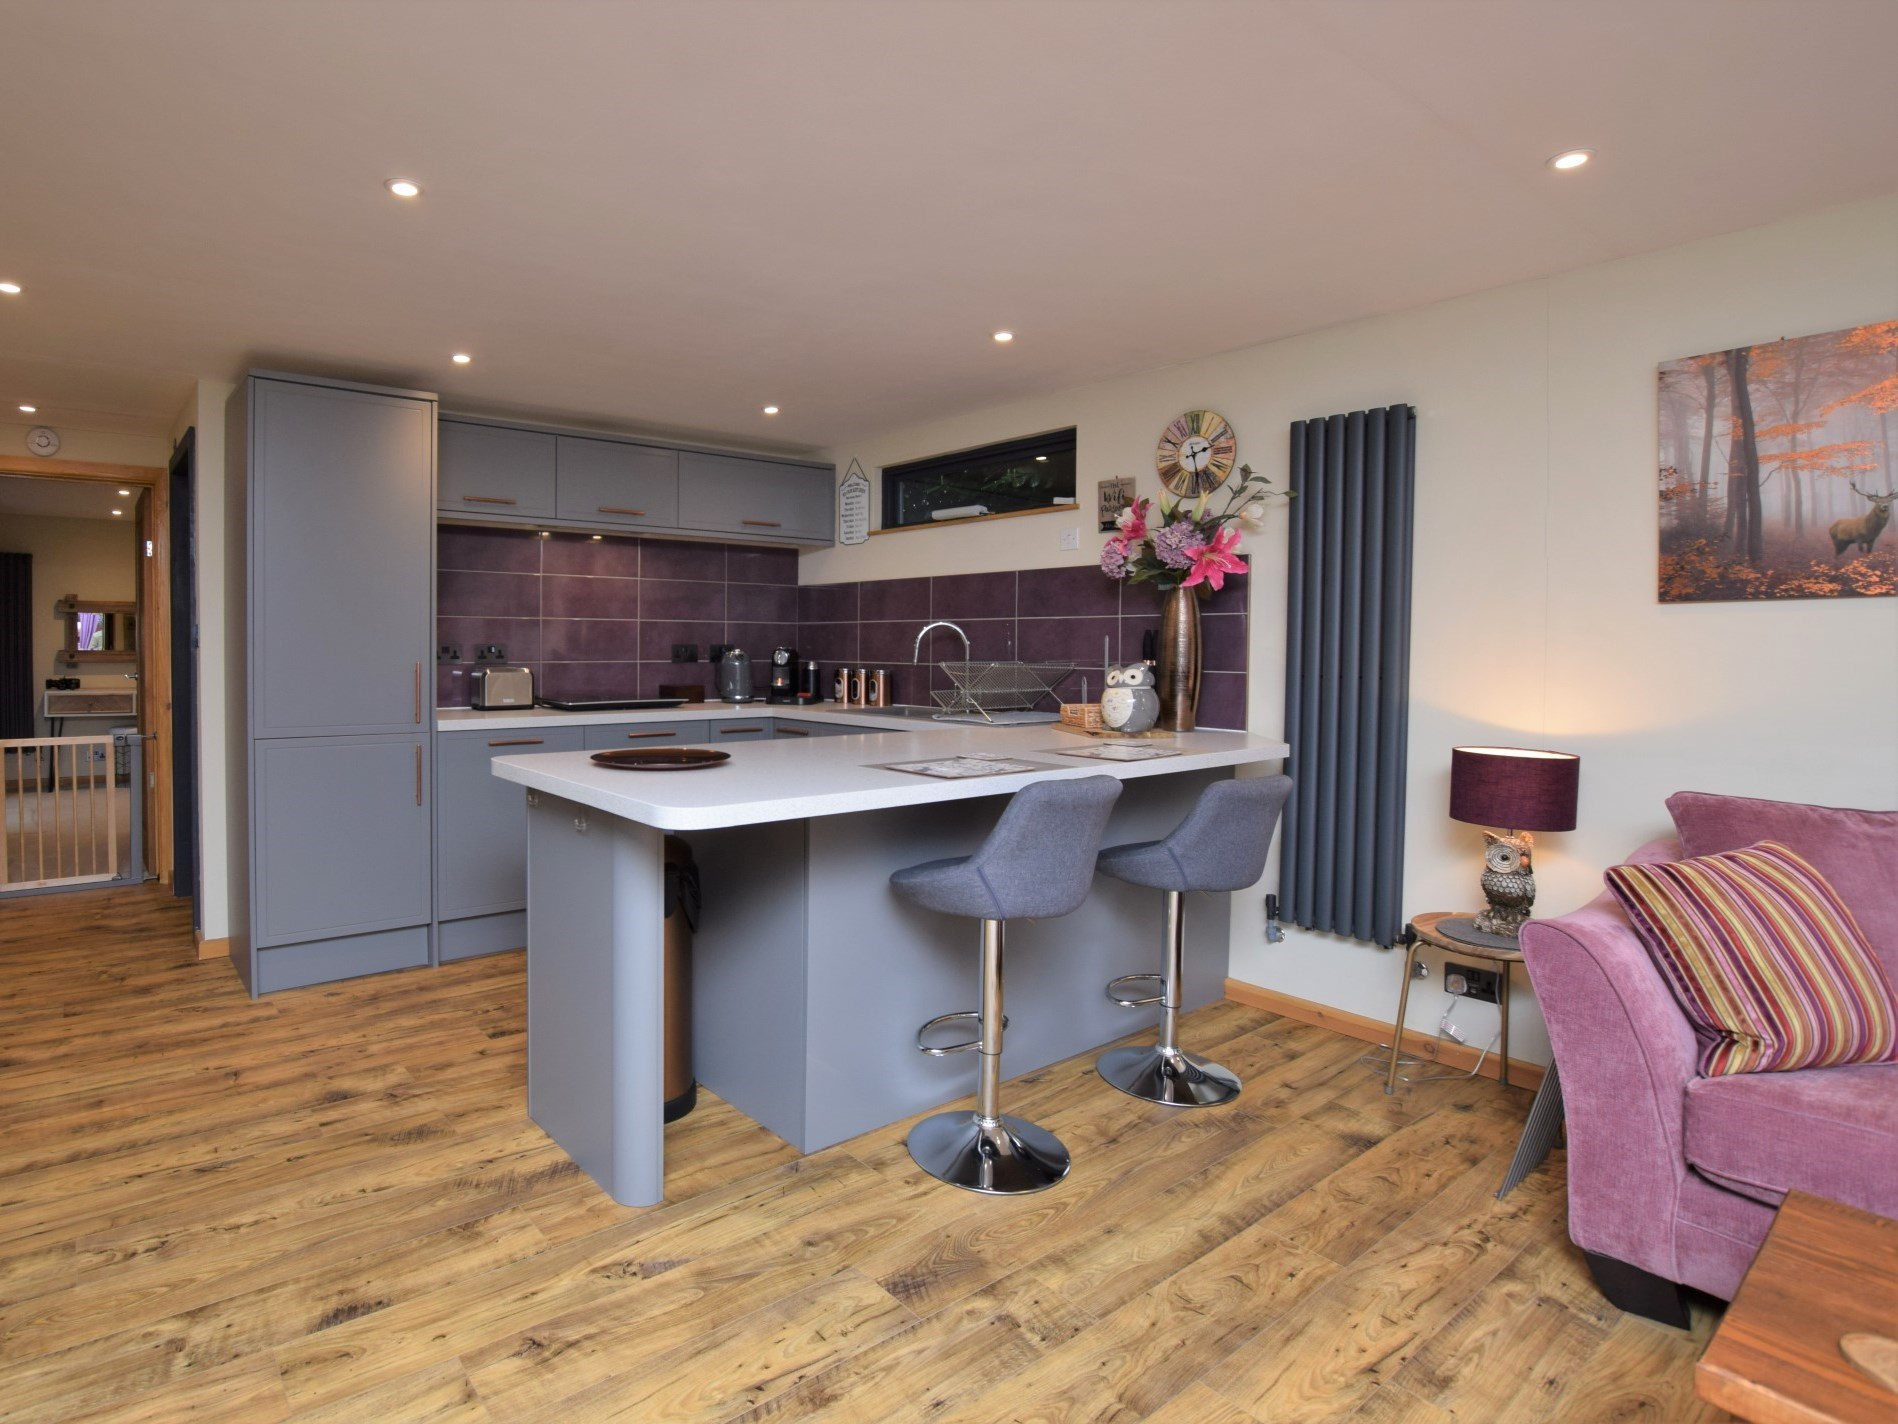 View across the open plan living space